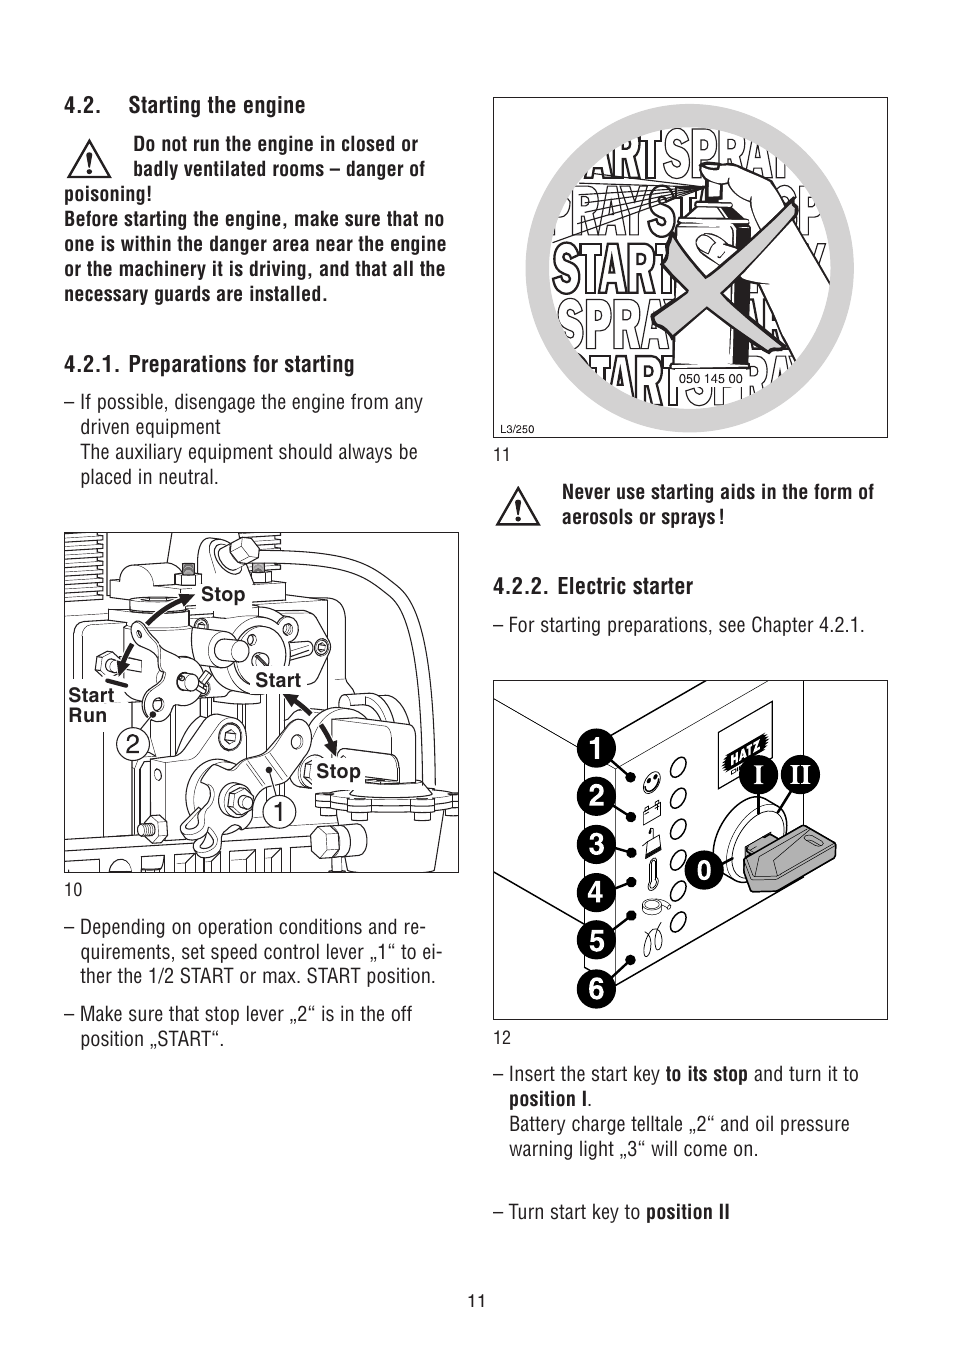 6l Mfi Dohc 4cyl Repair Guides Wiring Diagrams On Kia Rio 1 6l Engine